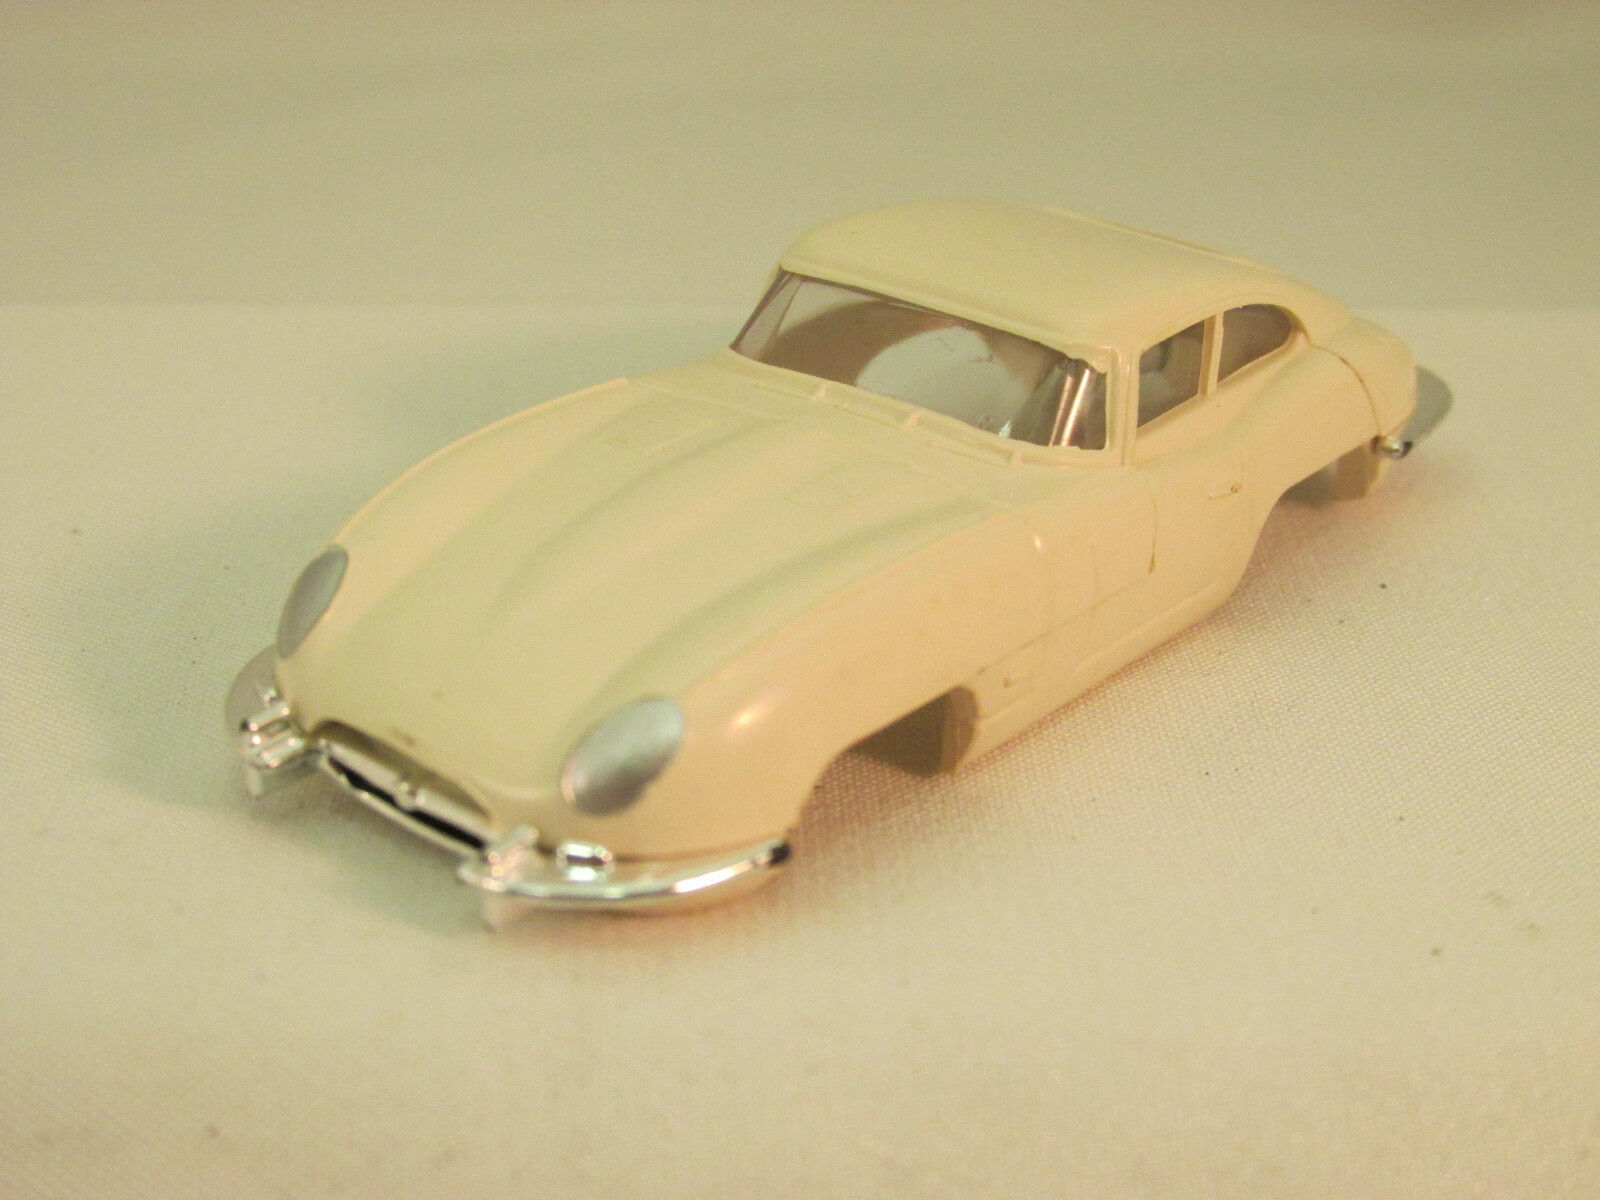 AURORA MODEL MOTORING WHITE XKE JAGUAR SHELL  UNCUT WHEELS  MINT COND